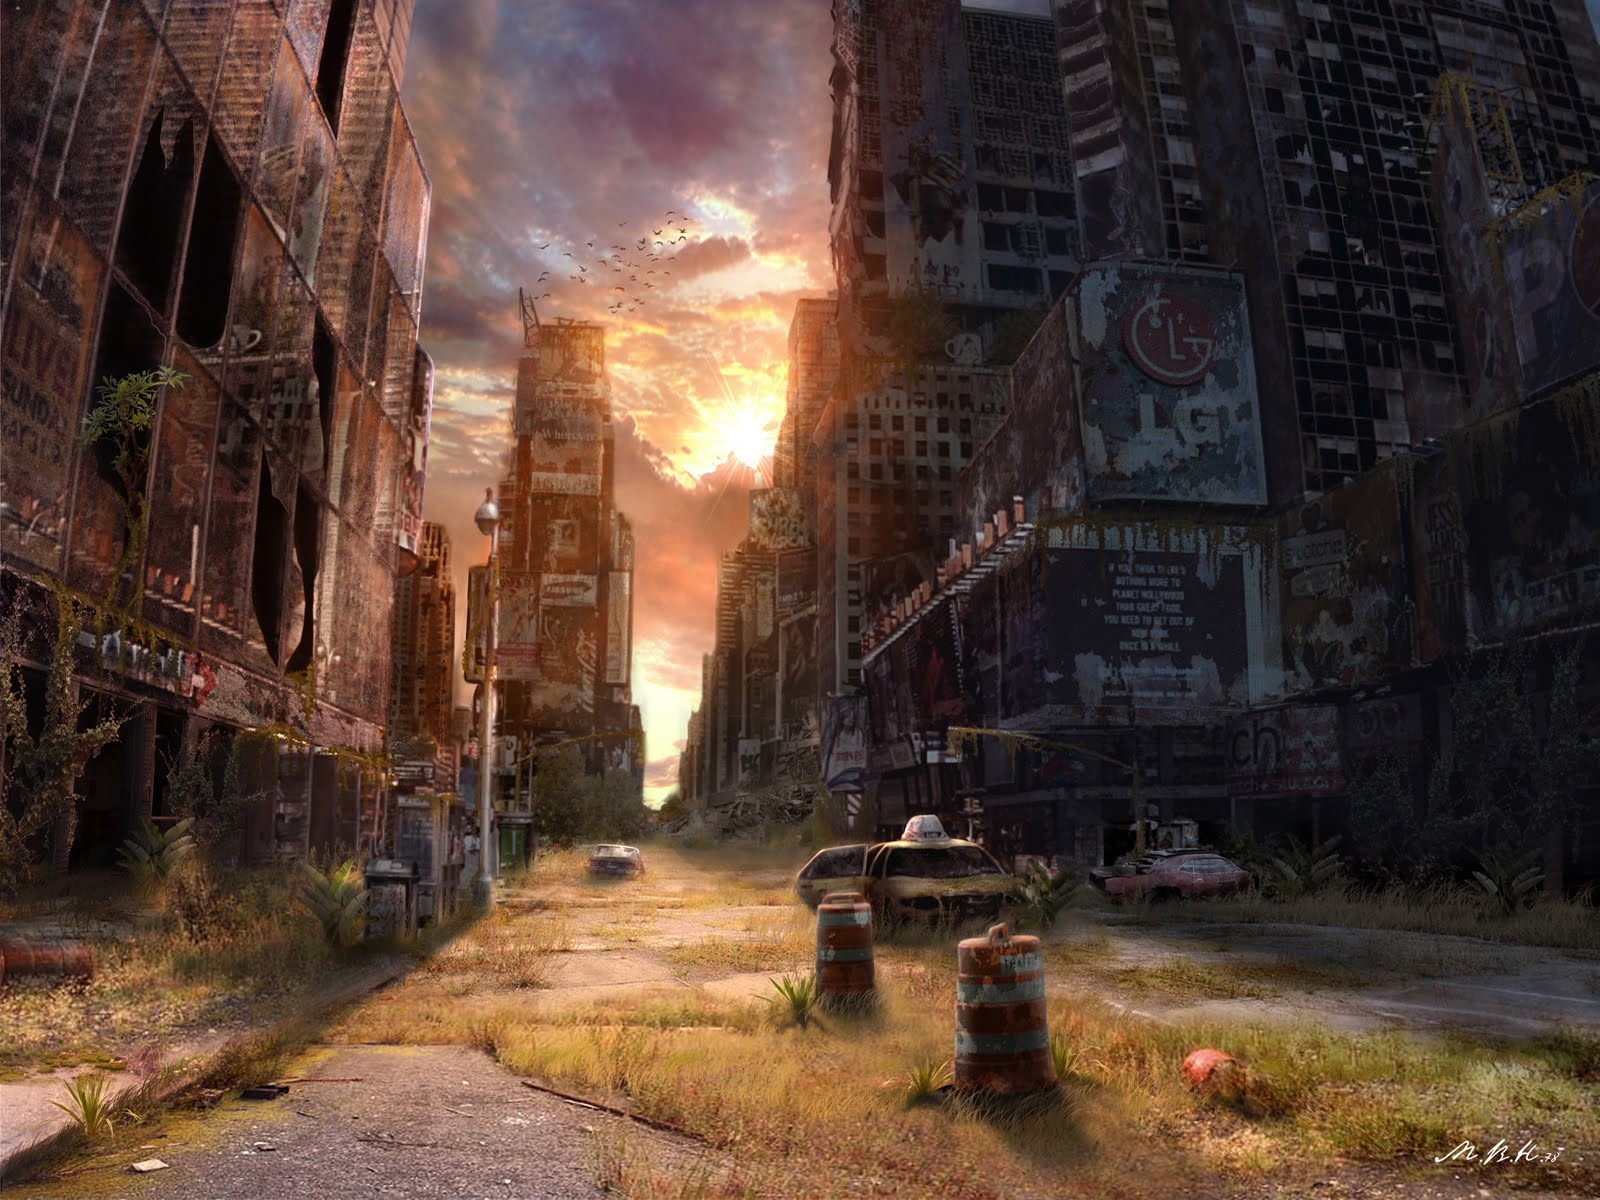 apocalyptic city wallpaper - photo #18